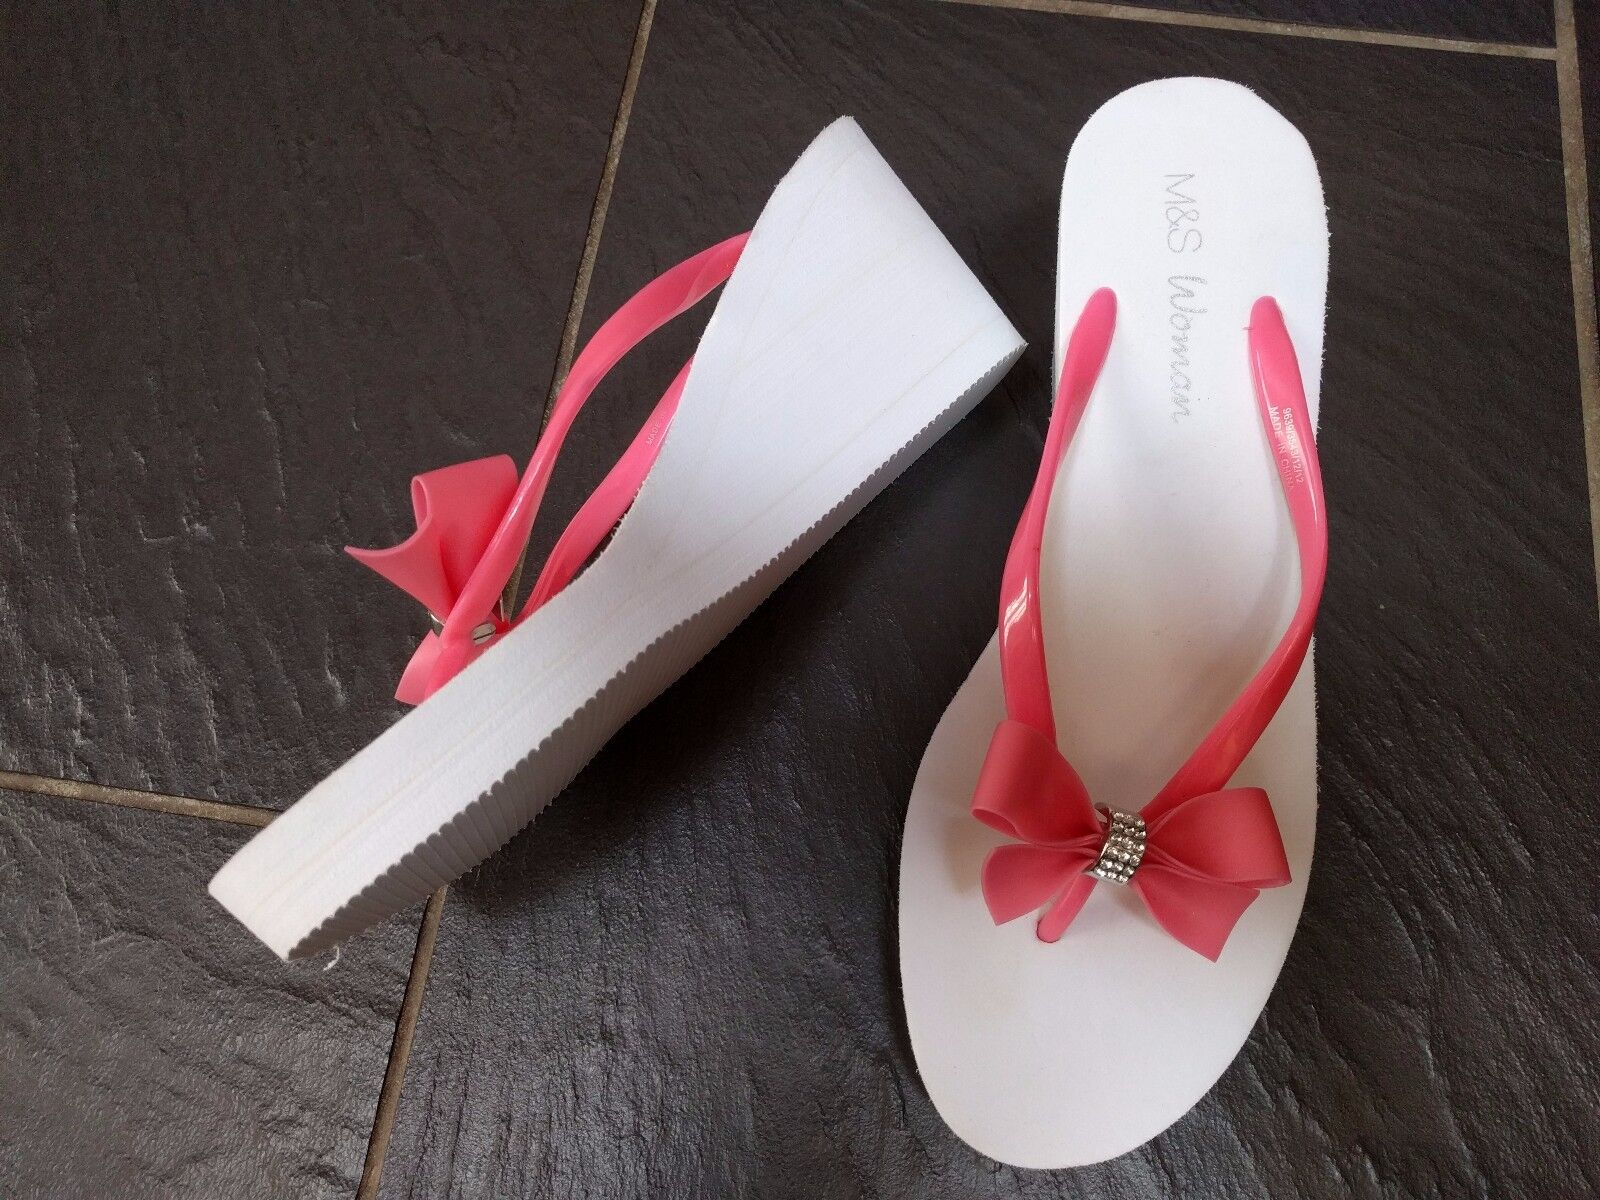 M&S PINK DIAMANTE WHITE SIZE WEDGE SANDALS FLIP FLOPS SIZE WHITE 7-8 6b953b